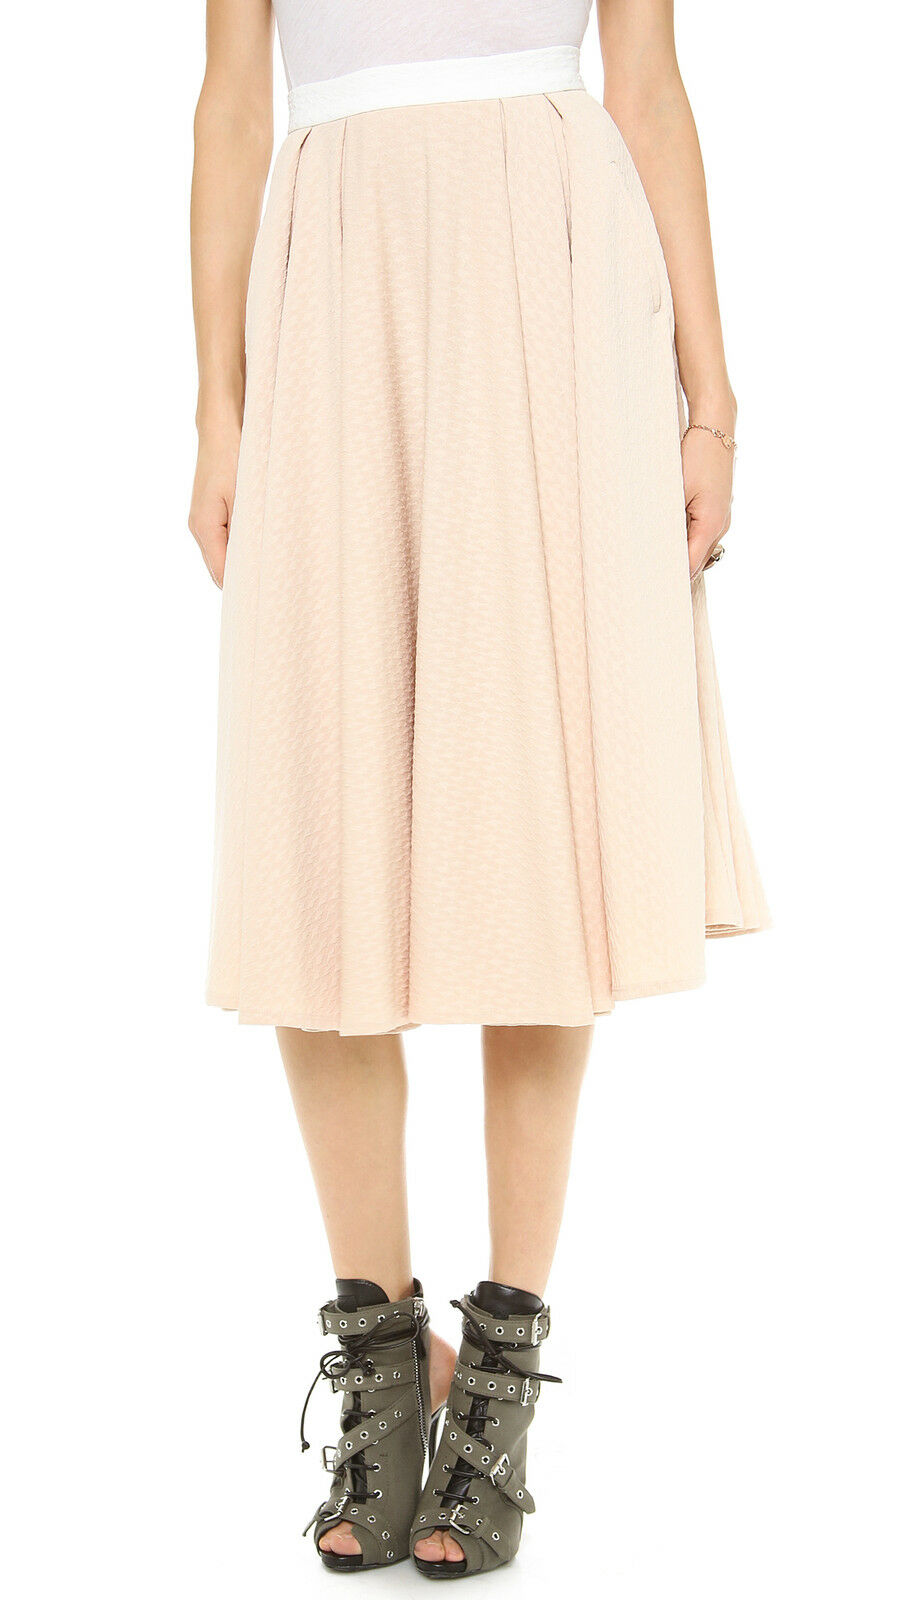 NWT Torn by Ronny Kobo May in Toasted Almond Textured Pleated Midi Skirt XS  248